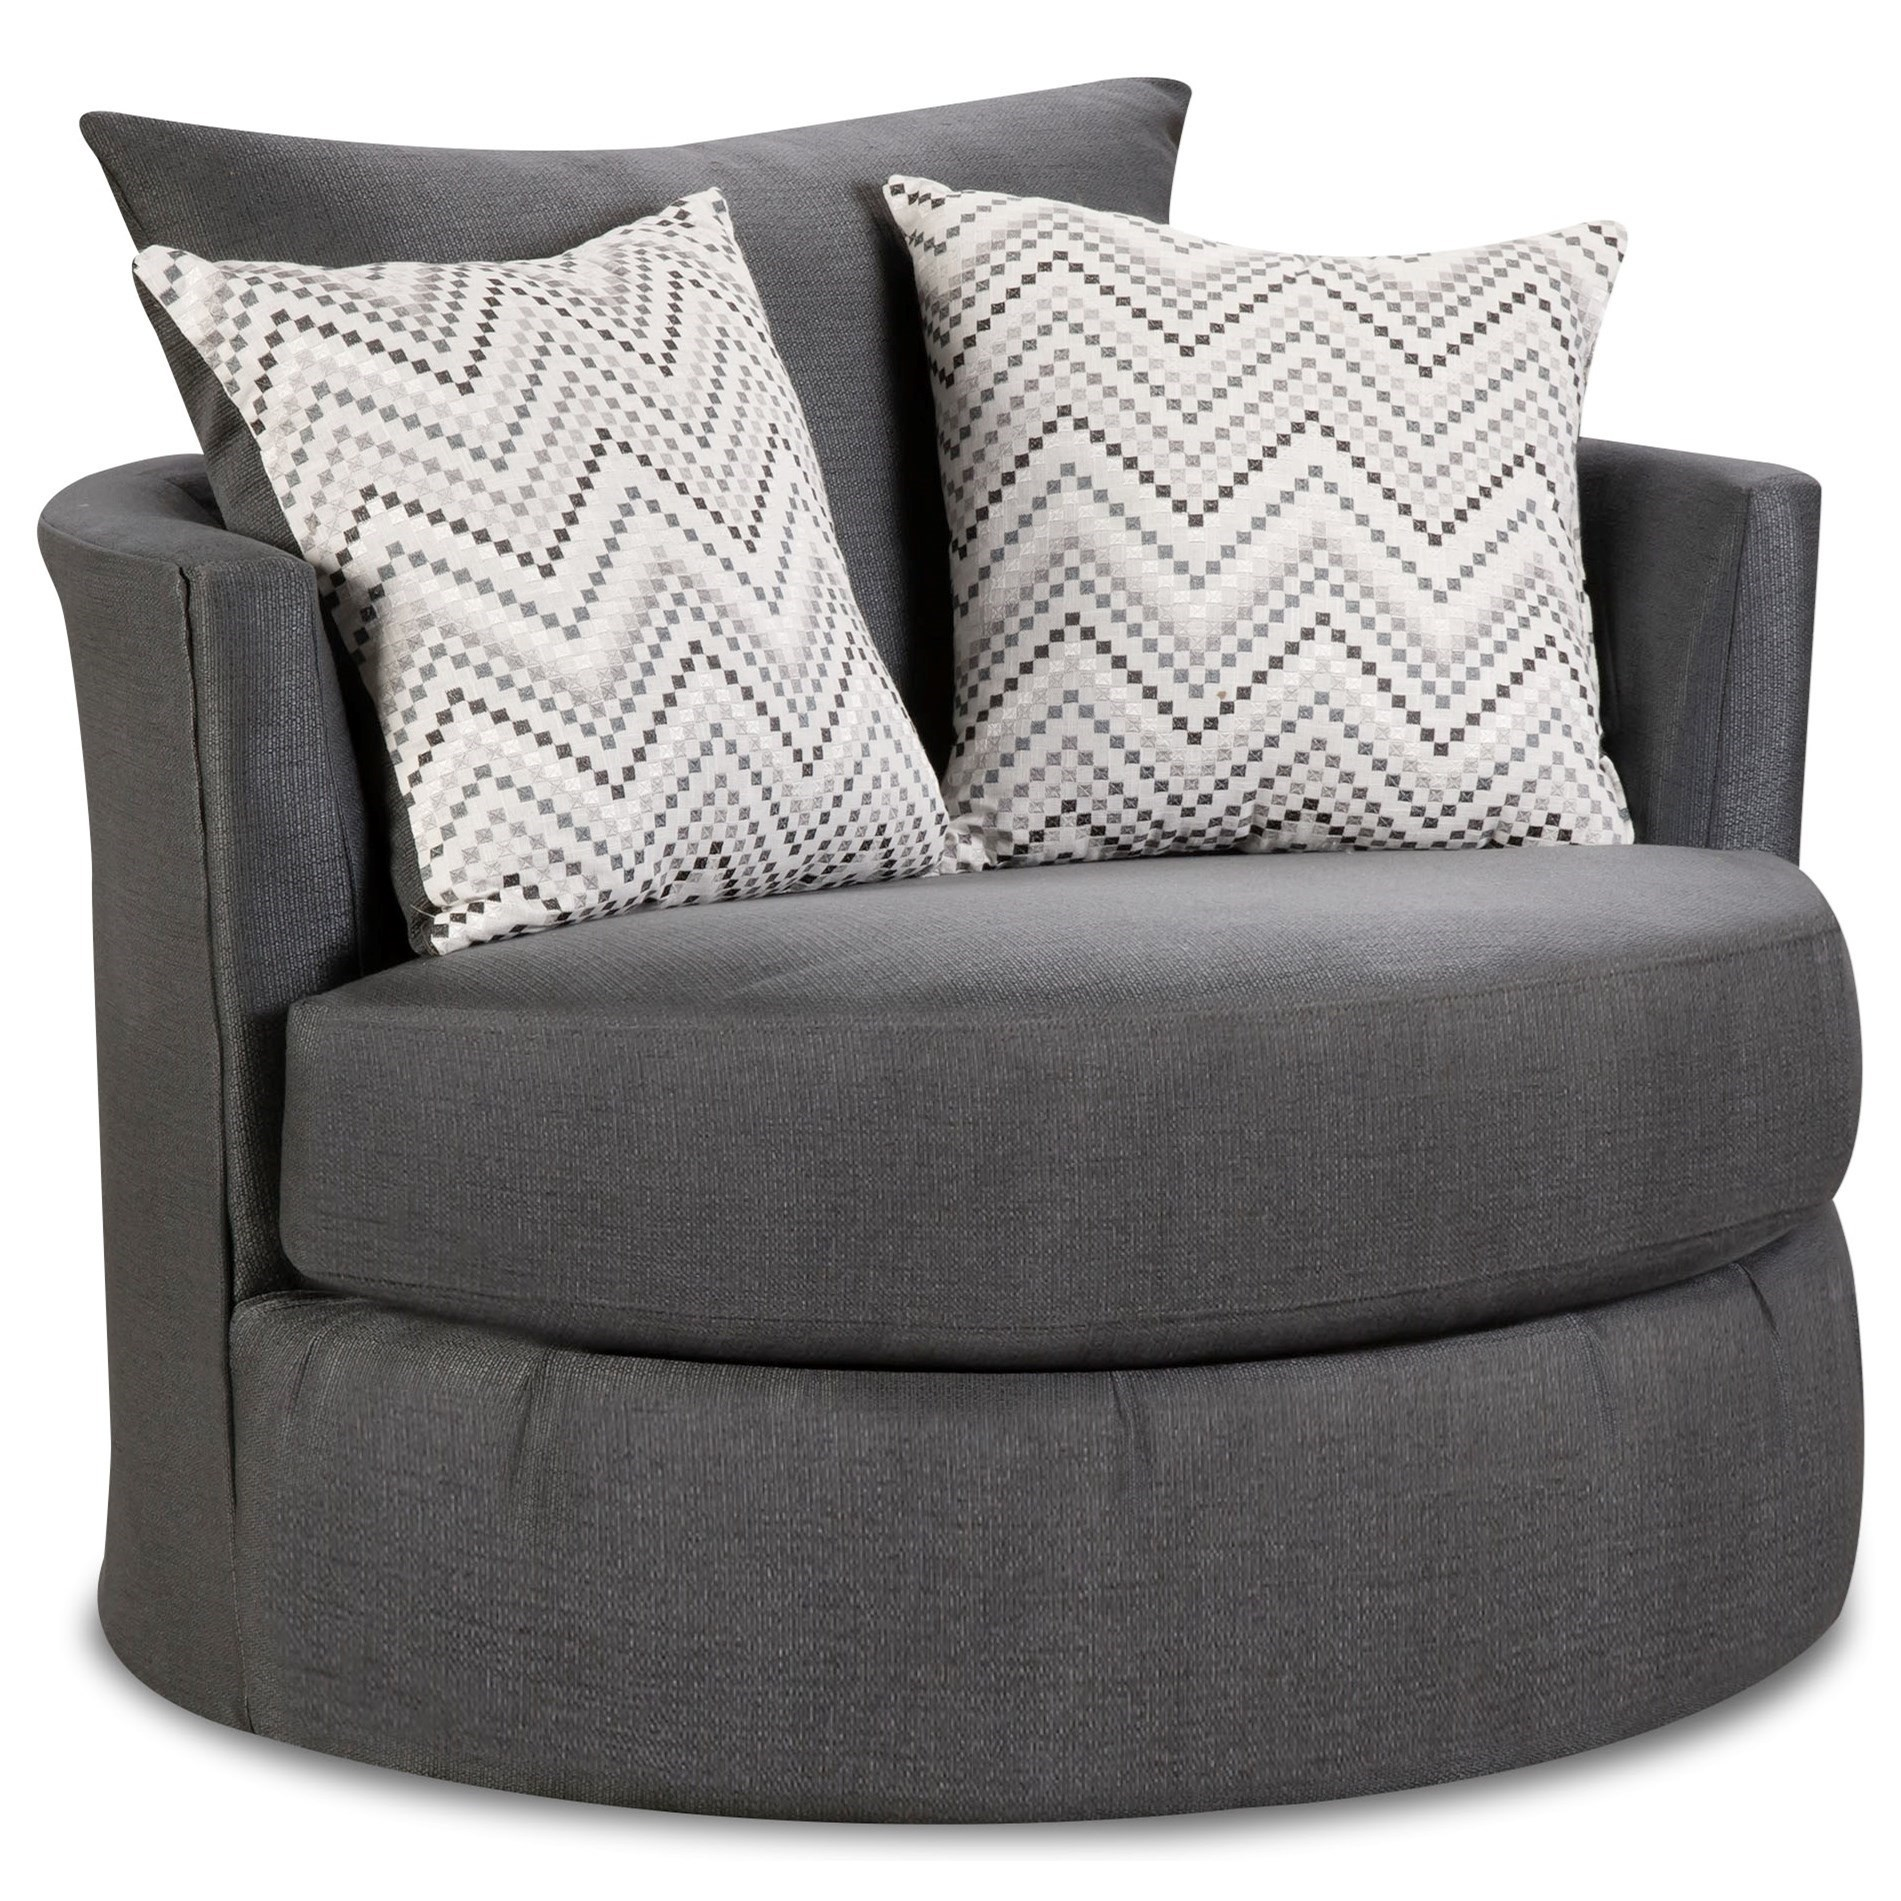 5500 Swivel Chair by Peak Living at Prime Brothers Furniture